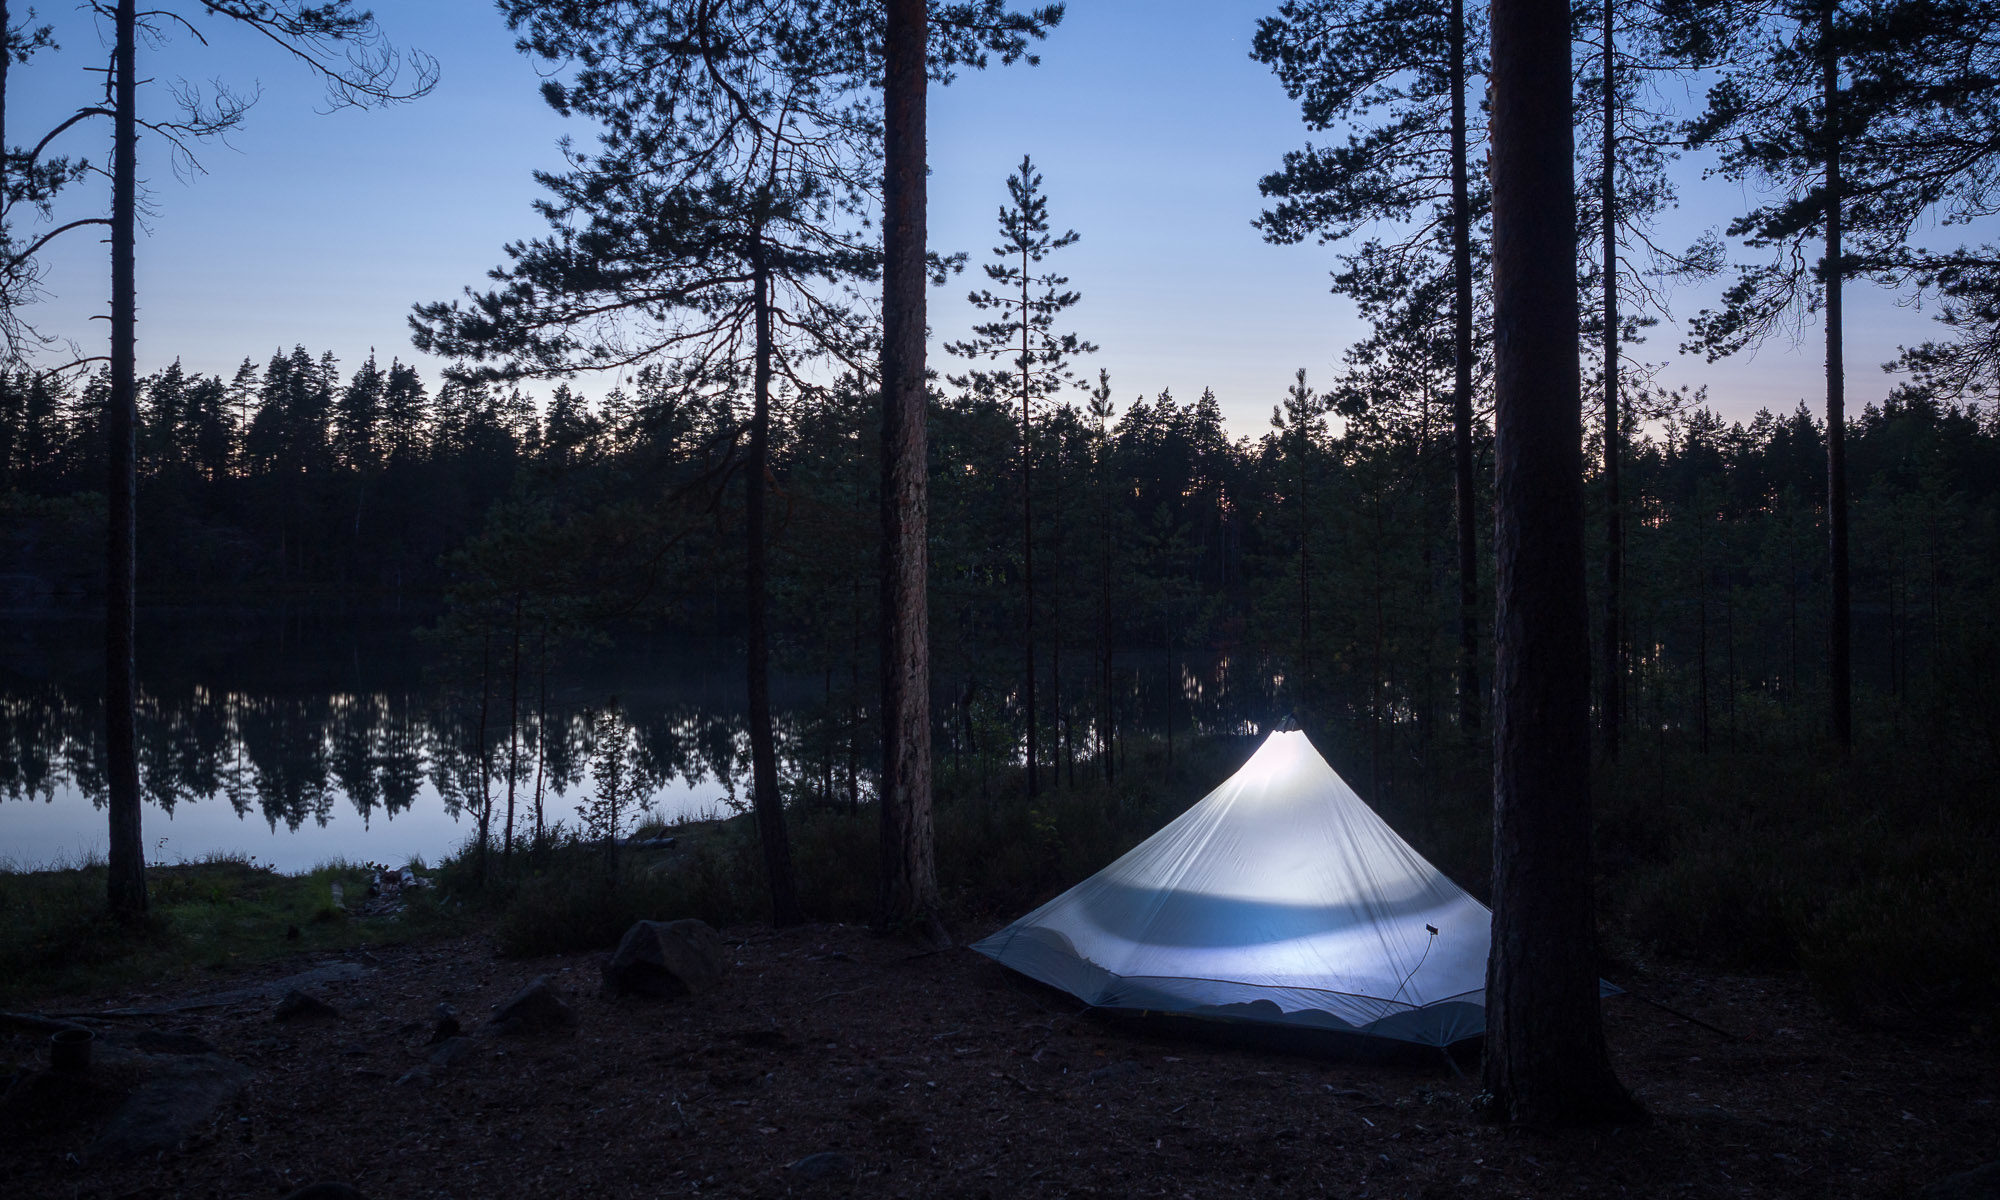 Nuuksio National Park in summer. Camping with a tent, nights are getting darker in August. Nature near Helsinki, Finland.